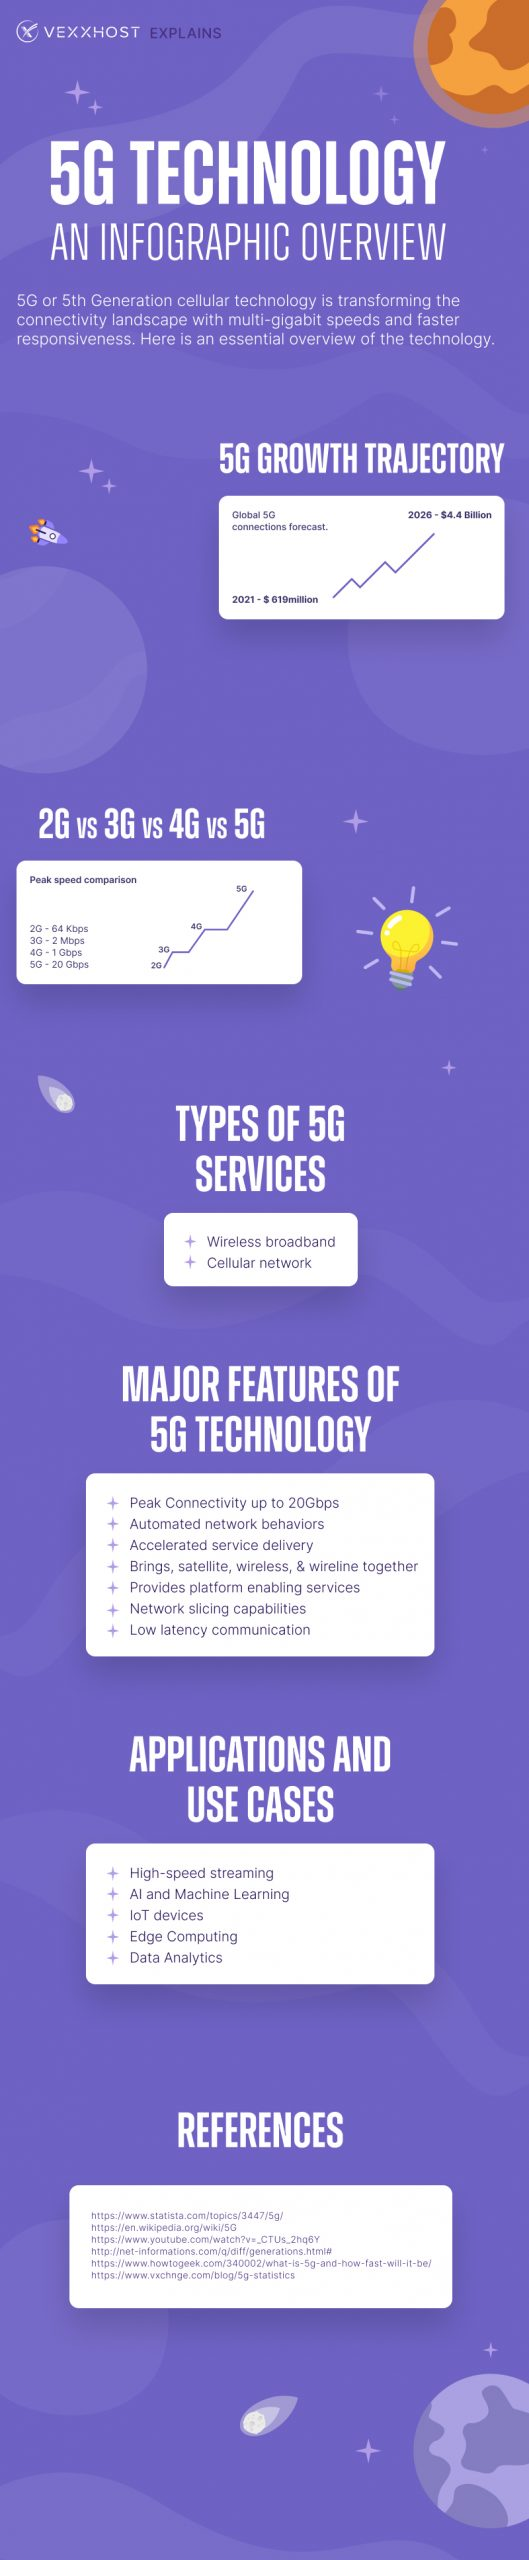 5G Technology - An Infographic Overview